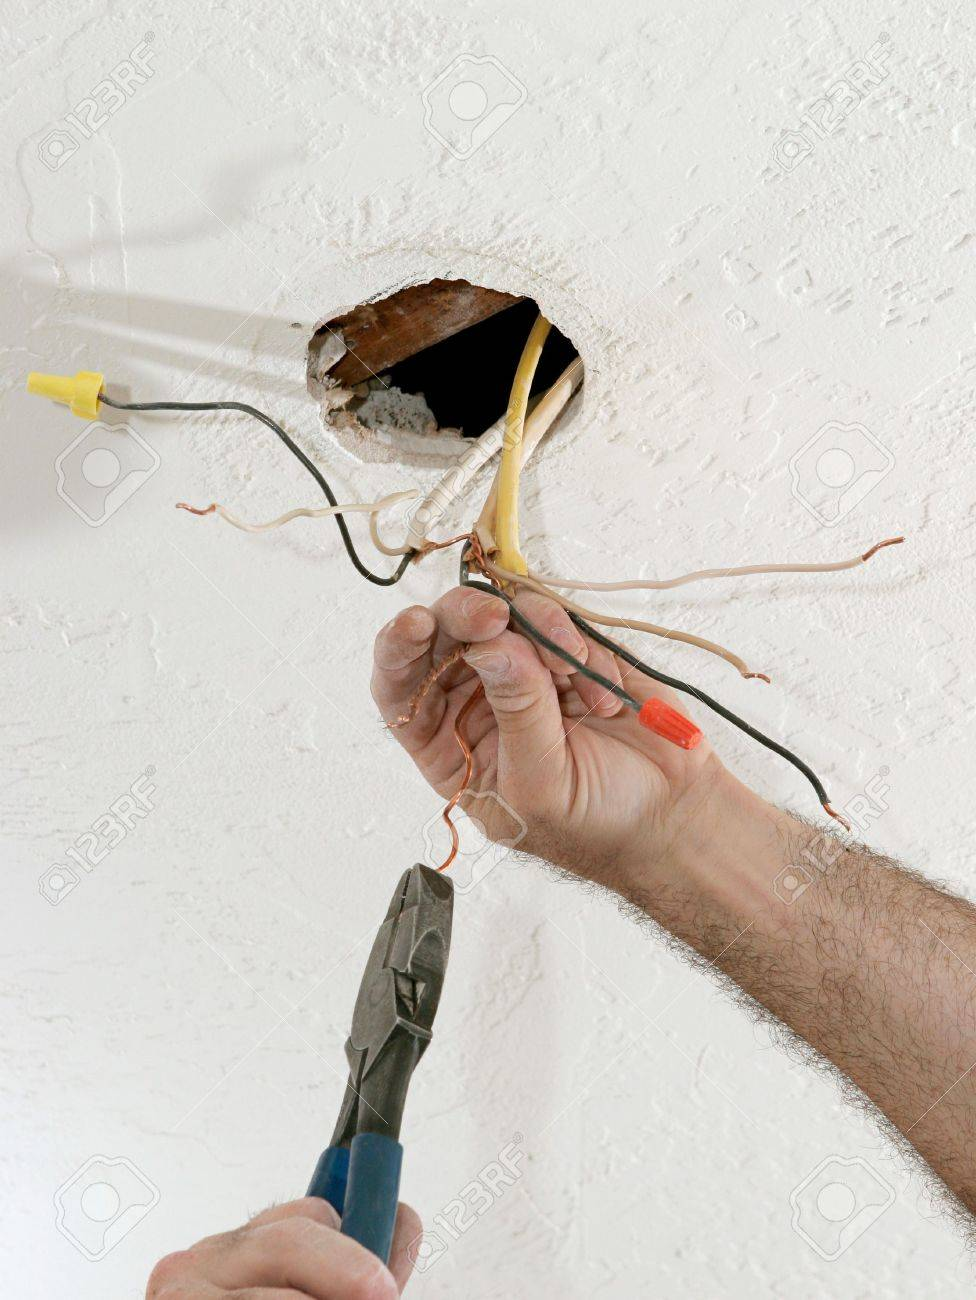 A Closeup Of An Electrician\'s Hands As He Uses Pliers To Straighten ...